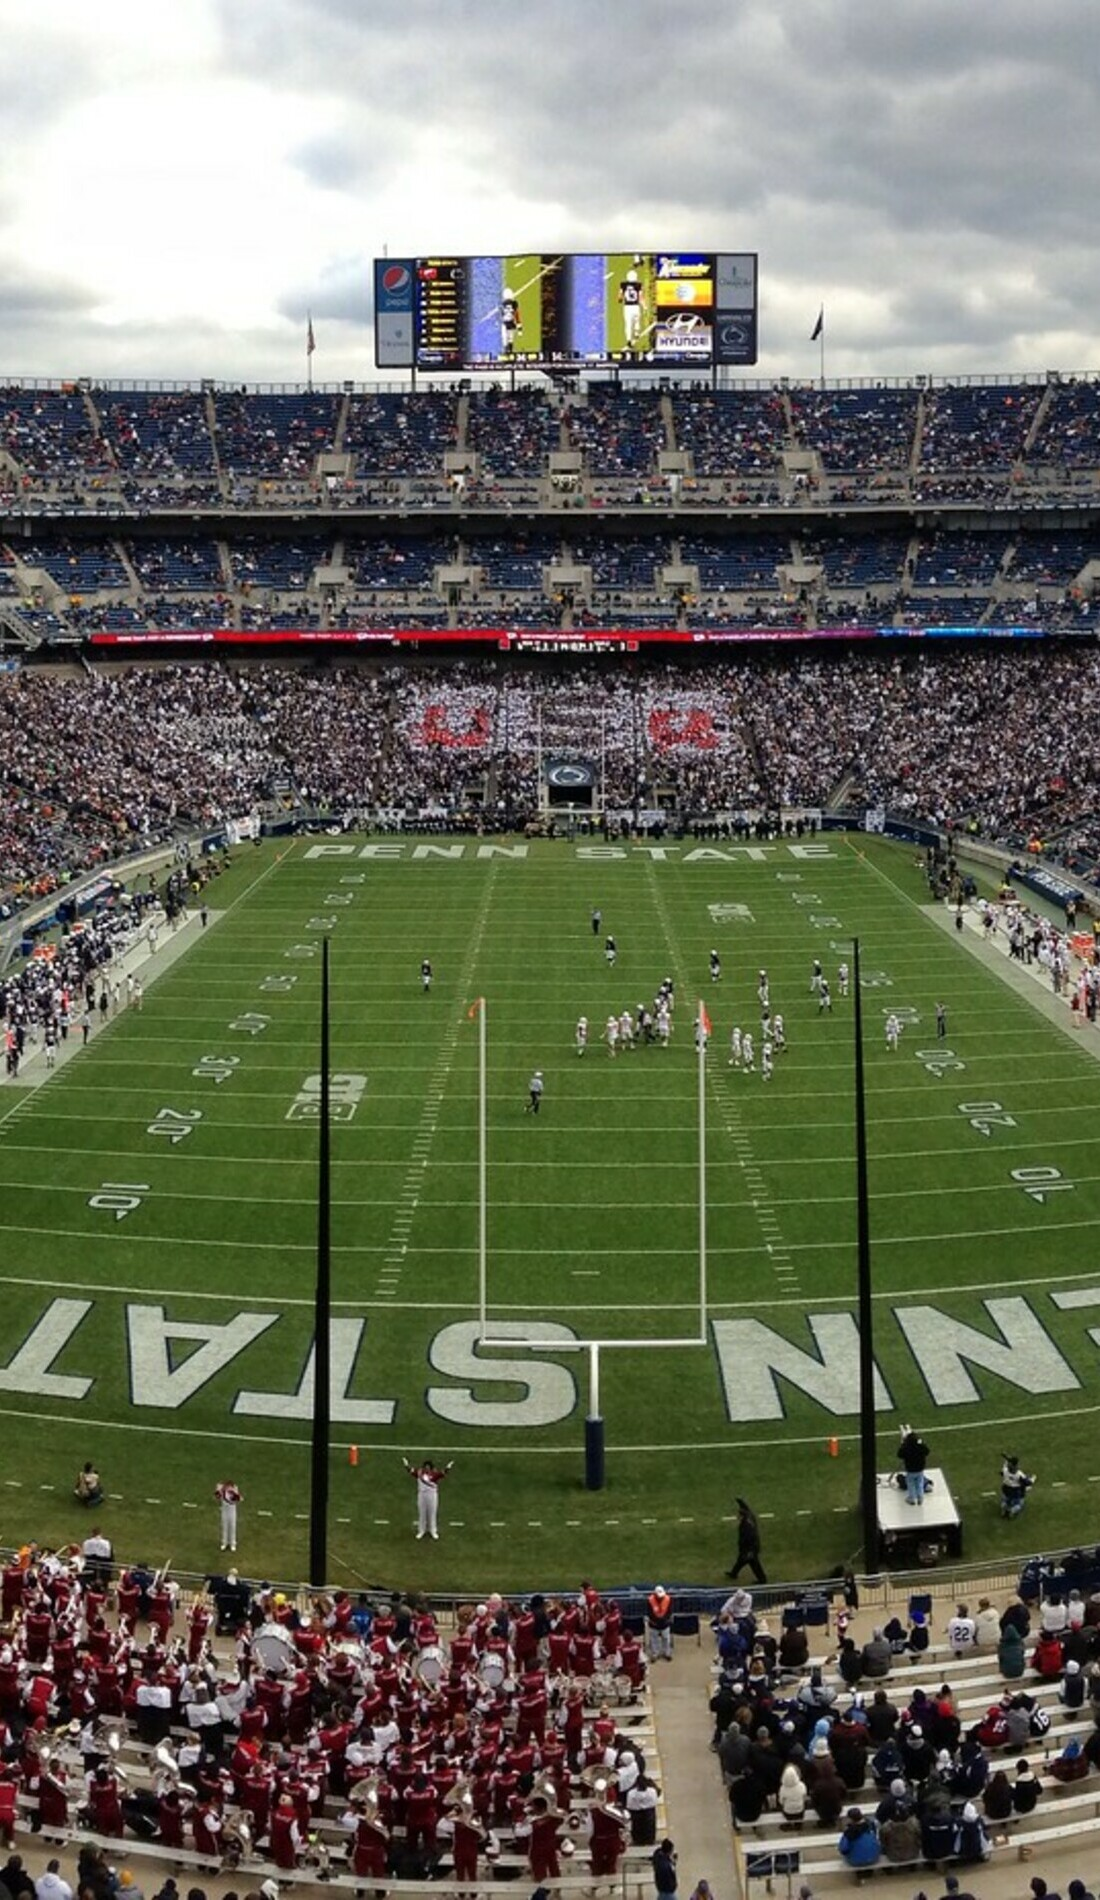 A Penn State Nittany Lions Football live event